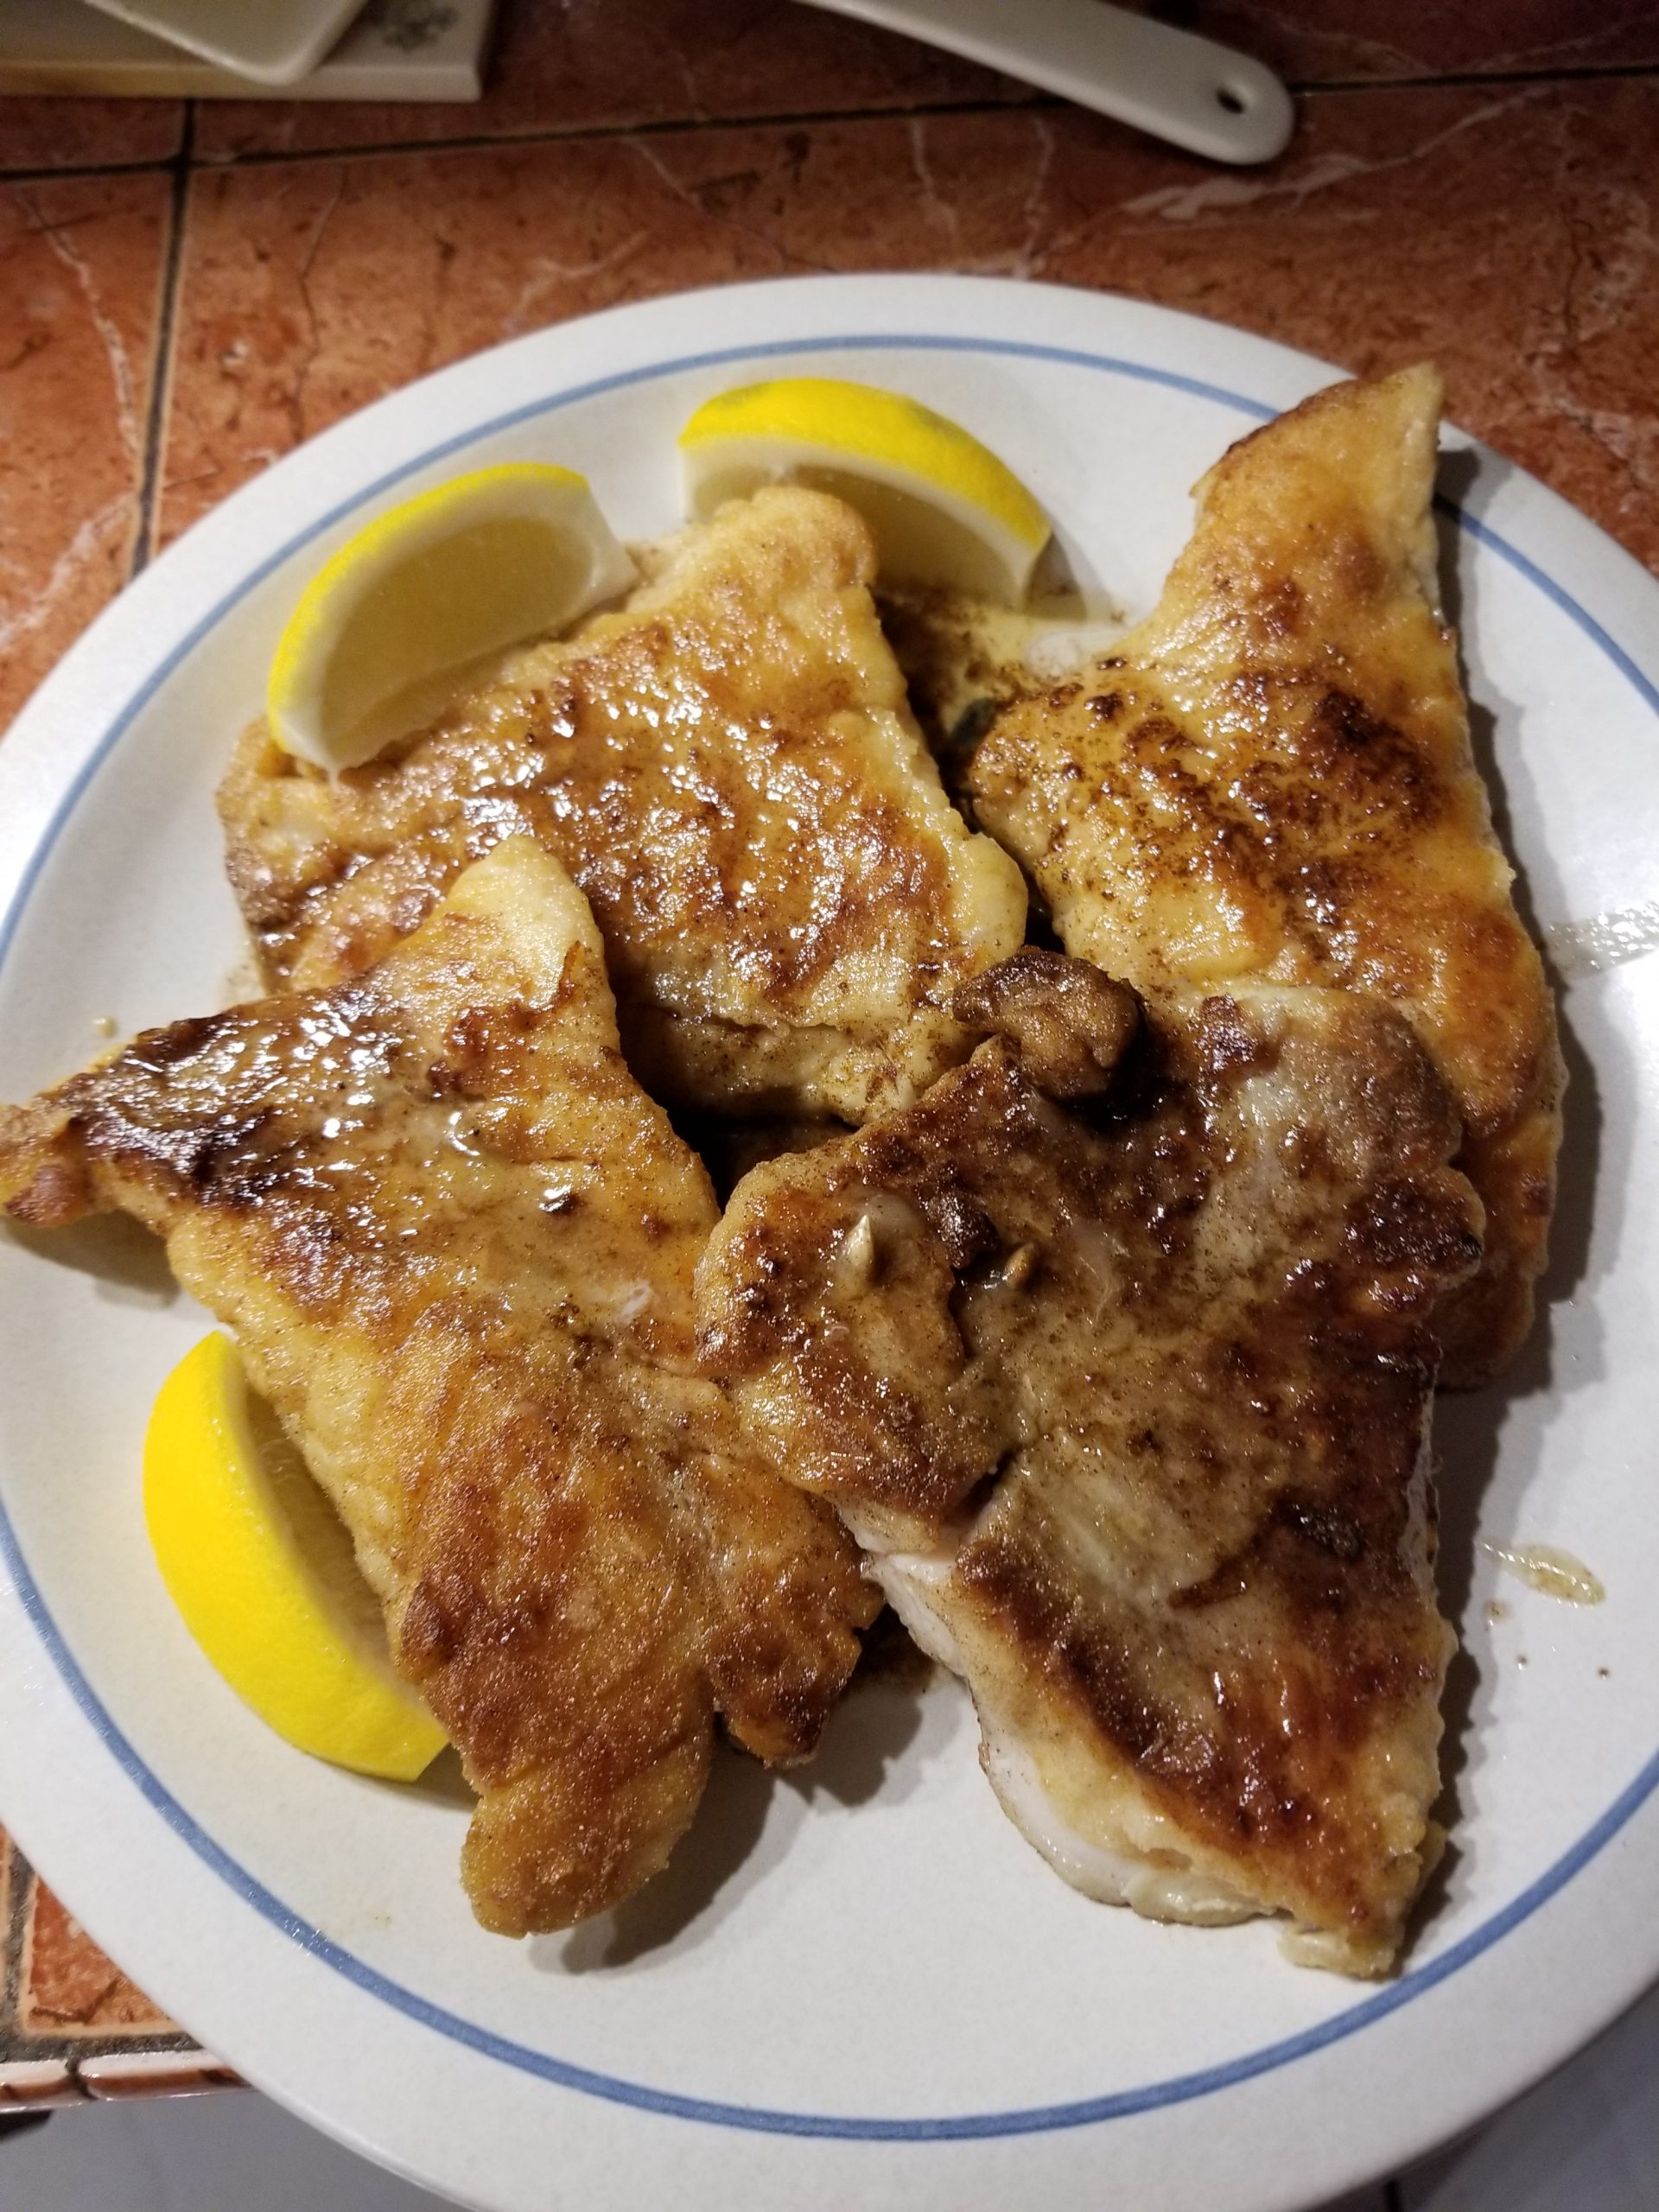 shows some lightly breaded pan fried fish